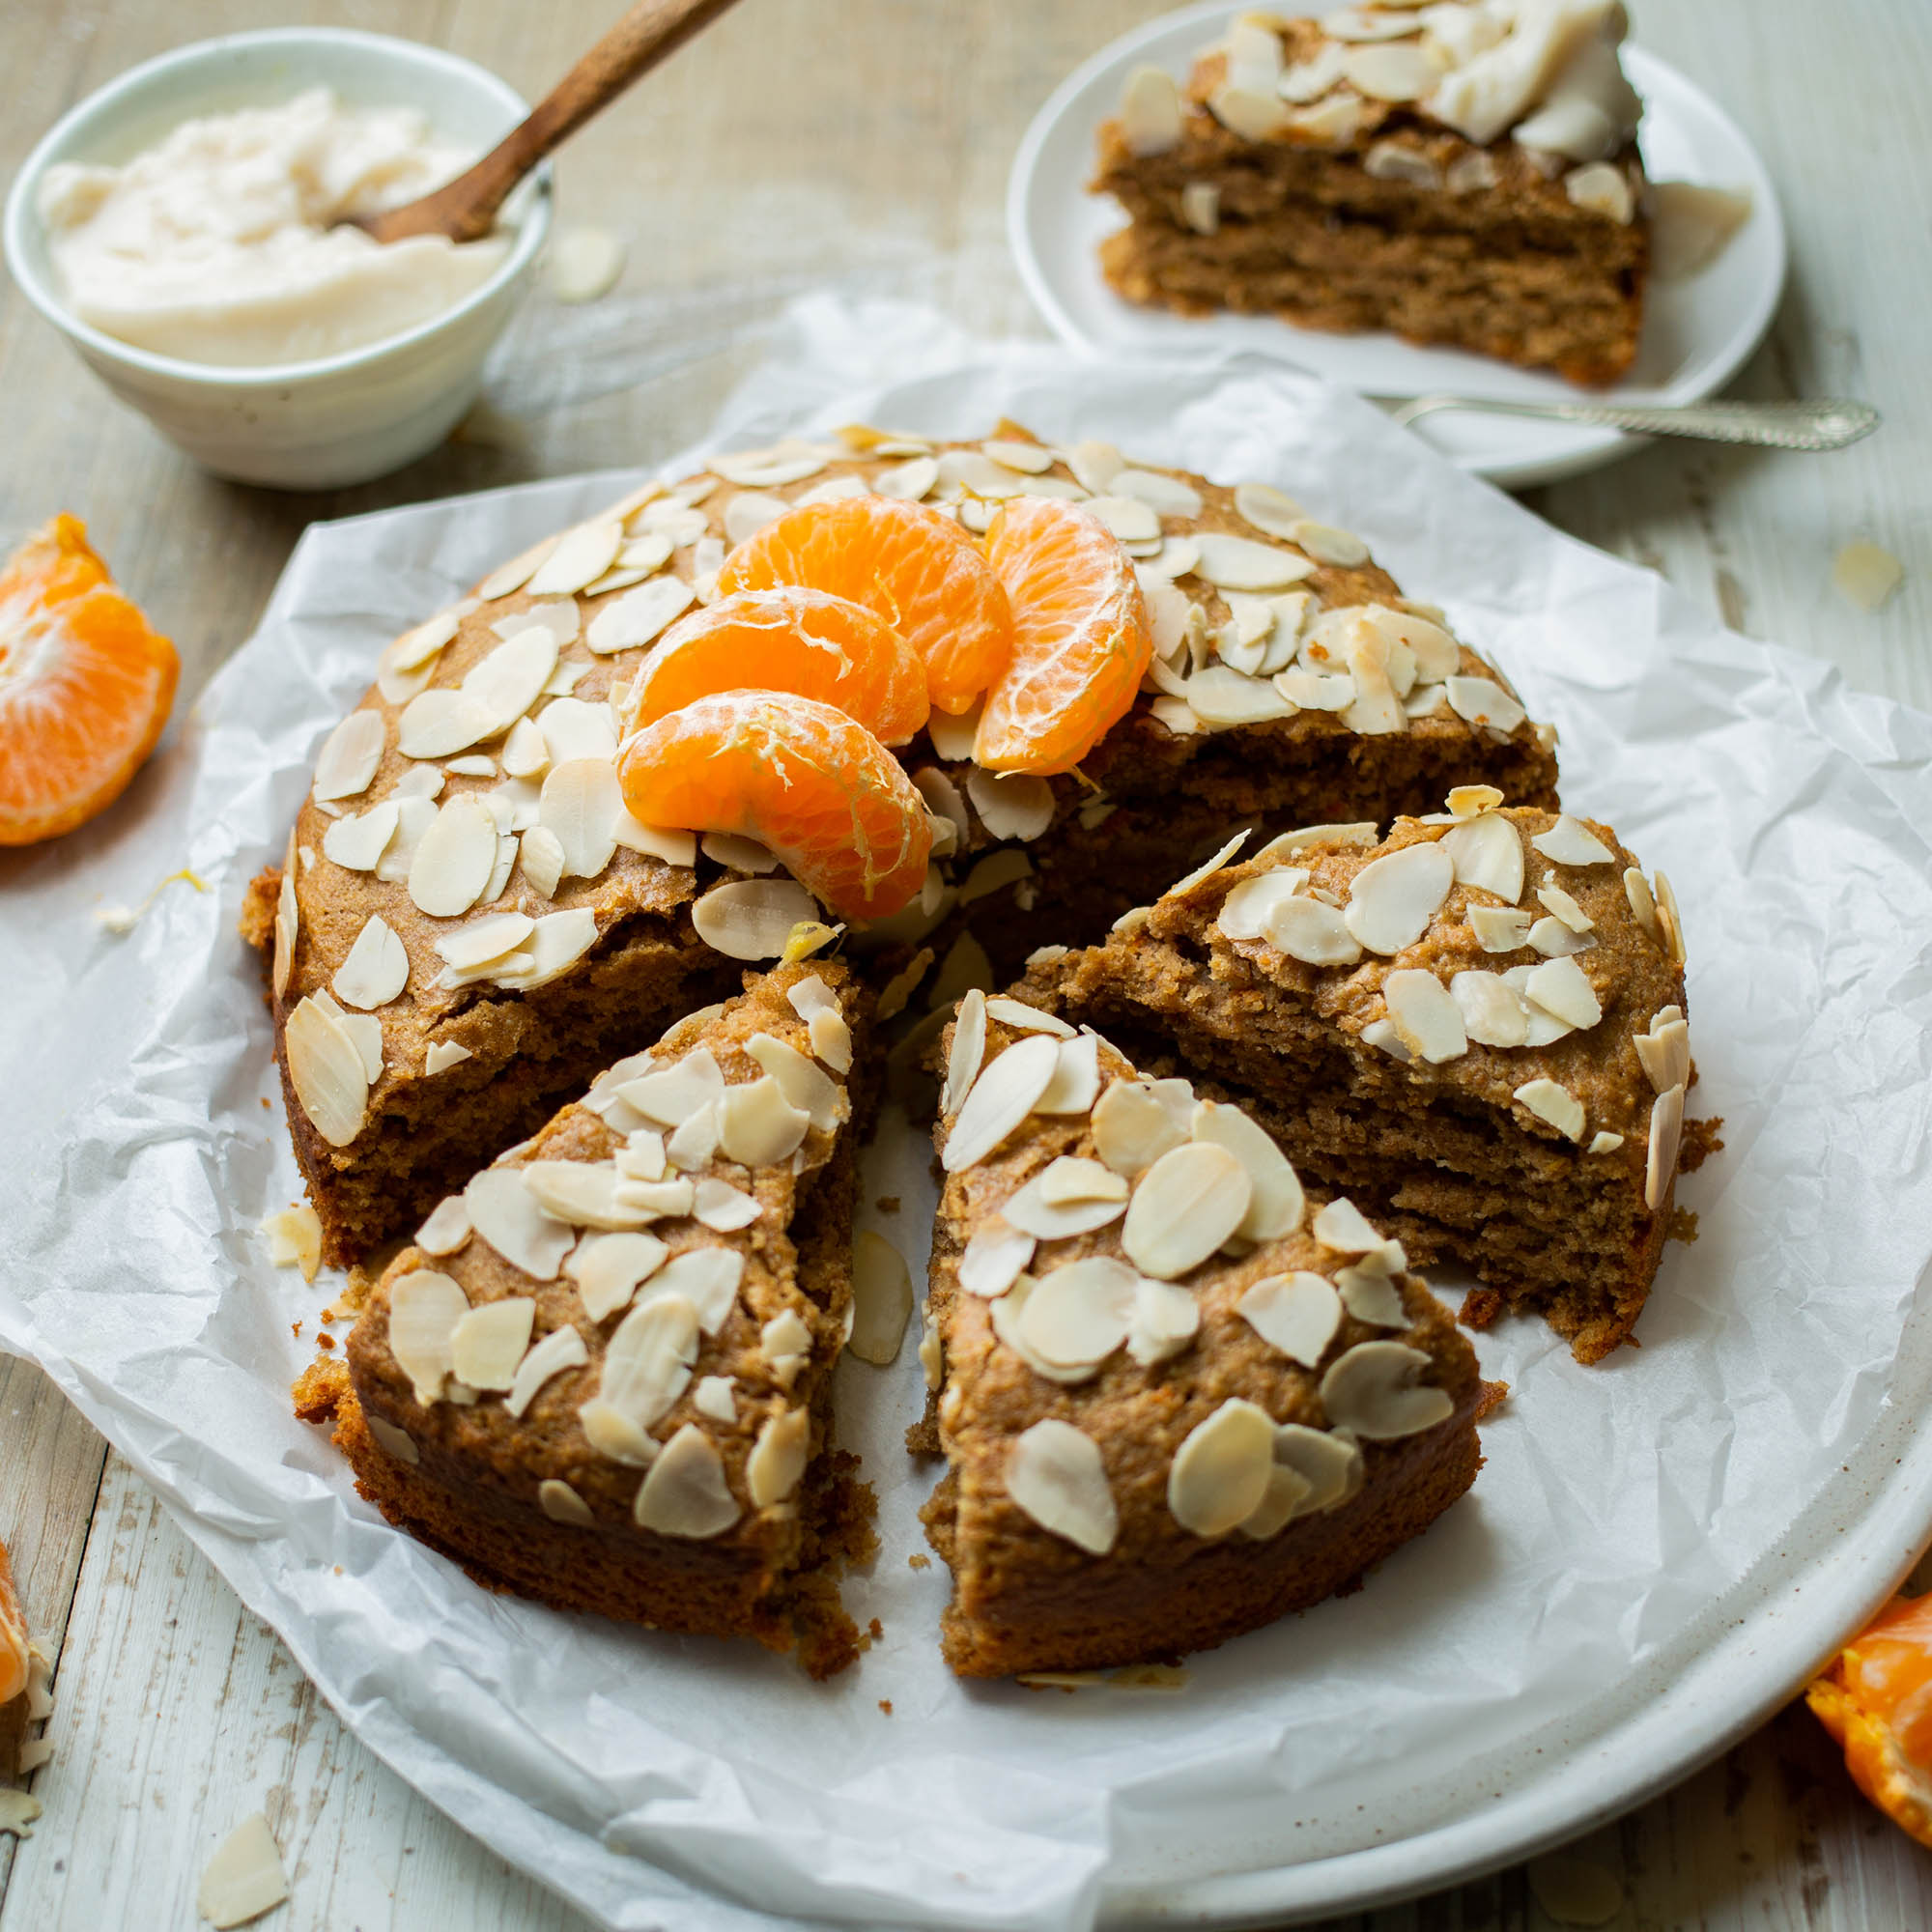 Vegan Refined Sugar Free Orange Almond Cake